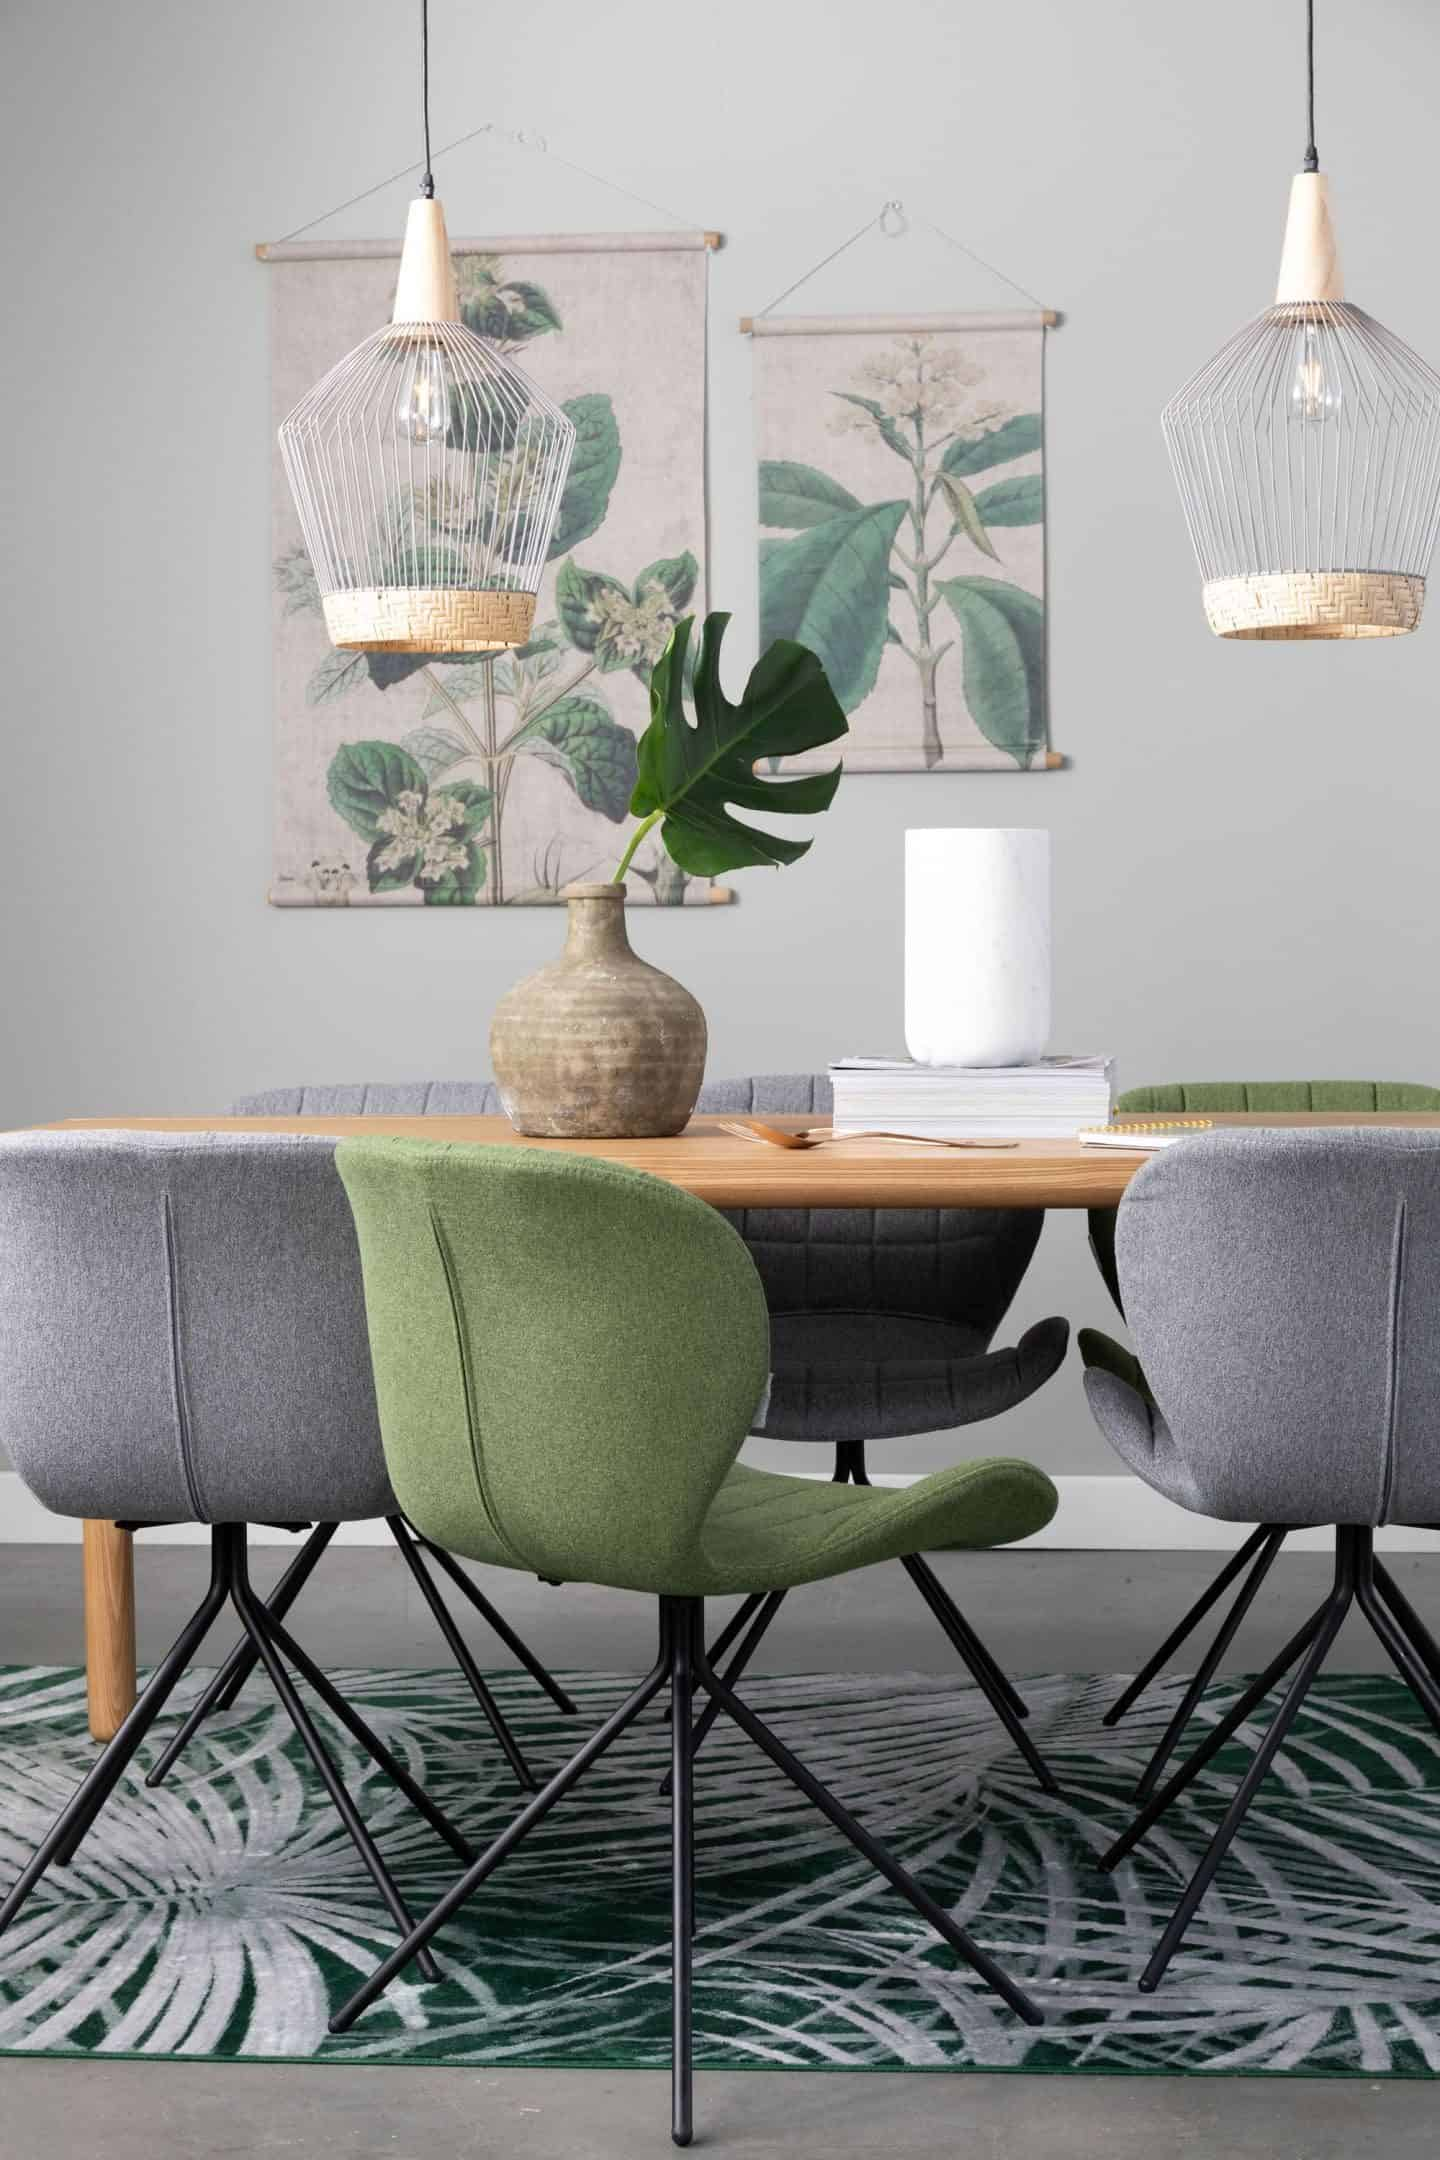 A desk or dining table with chairs around and two pendant lights suspended above. Botanical prints hang on the wall behind.